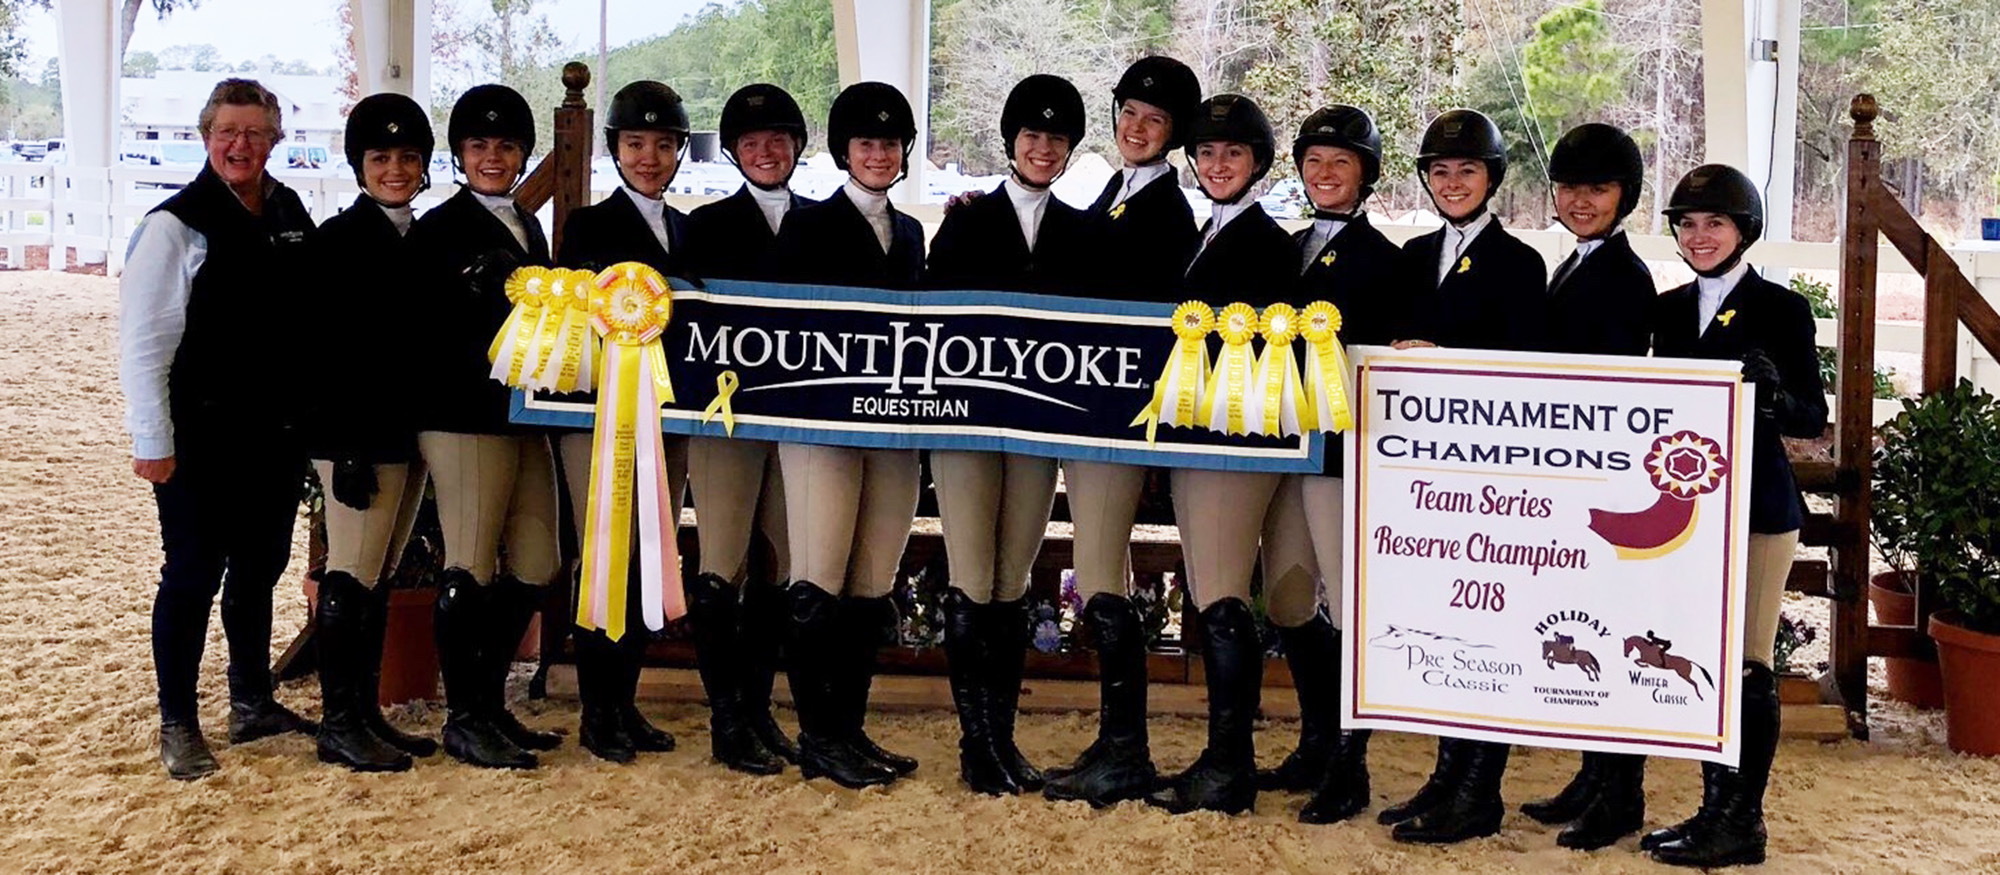 Photo of the Lyons riding team members posing after finishing third at the Winter II Tournament of Champions. MHC was the Tournament of Champions Reserve Champions for 2017-18.